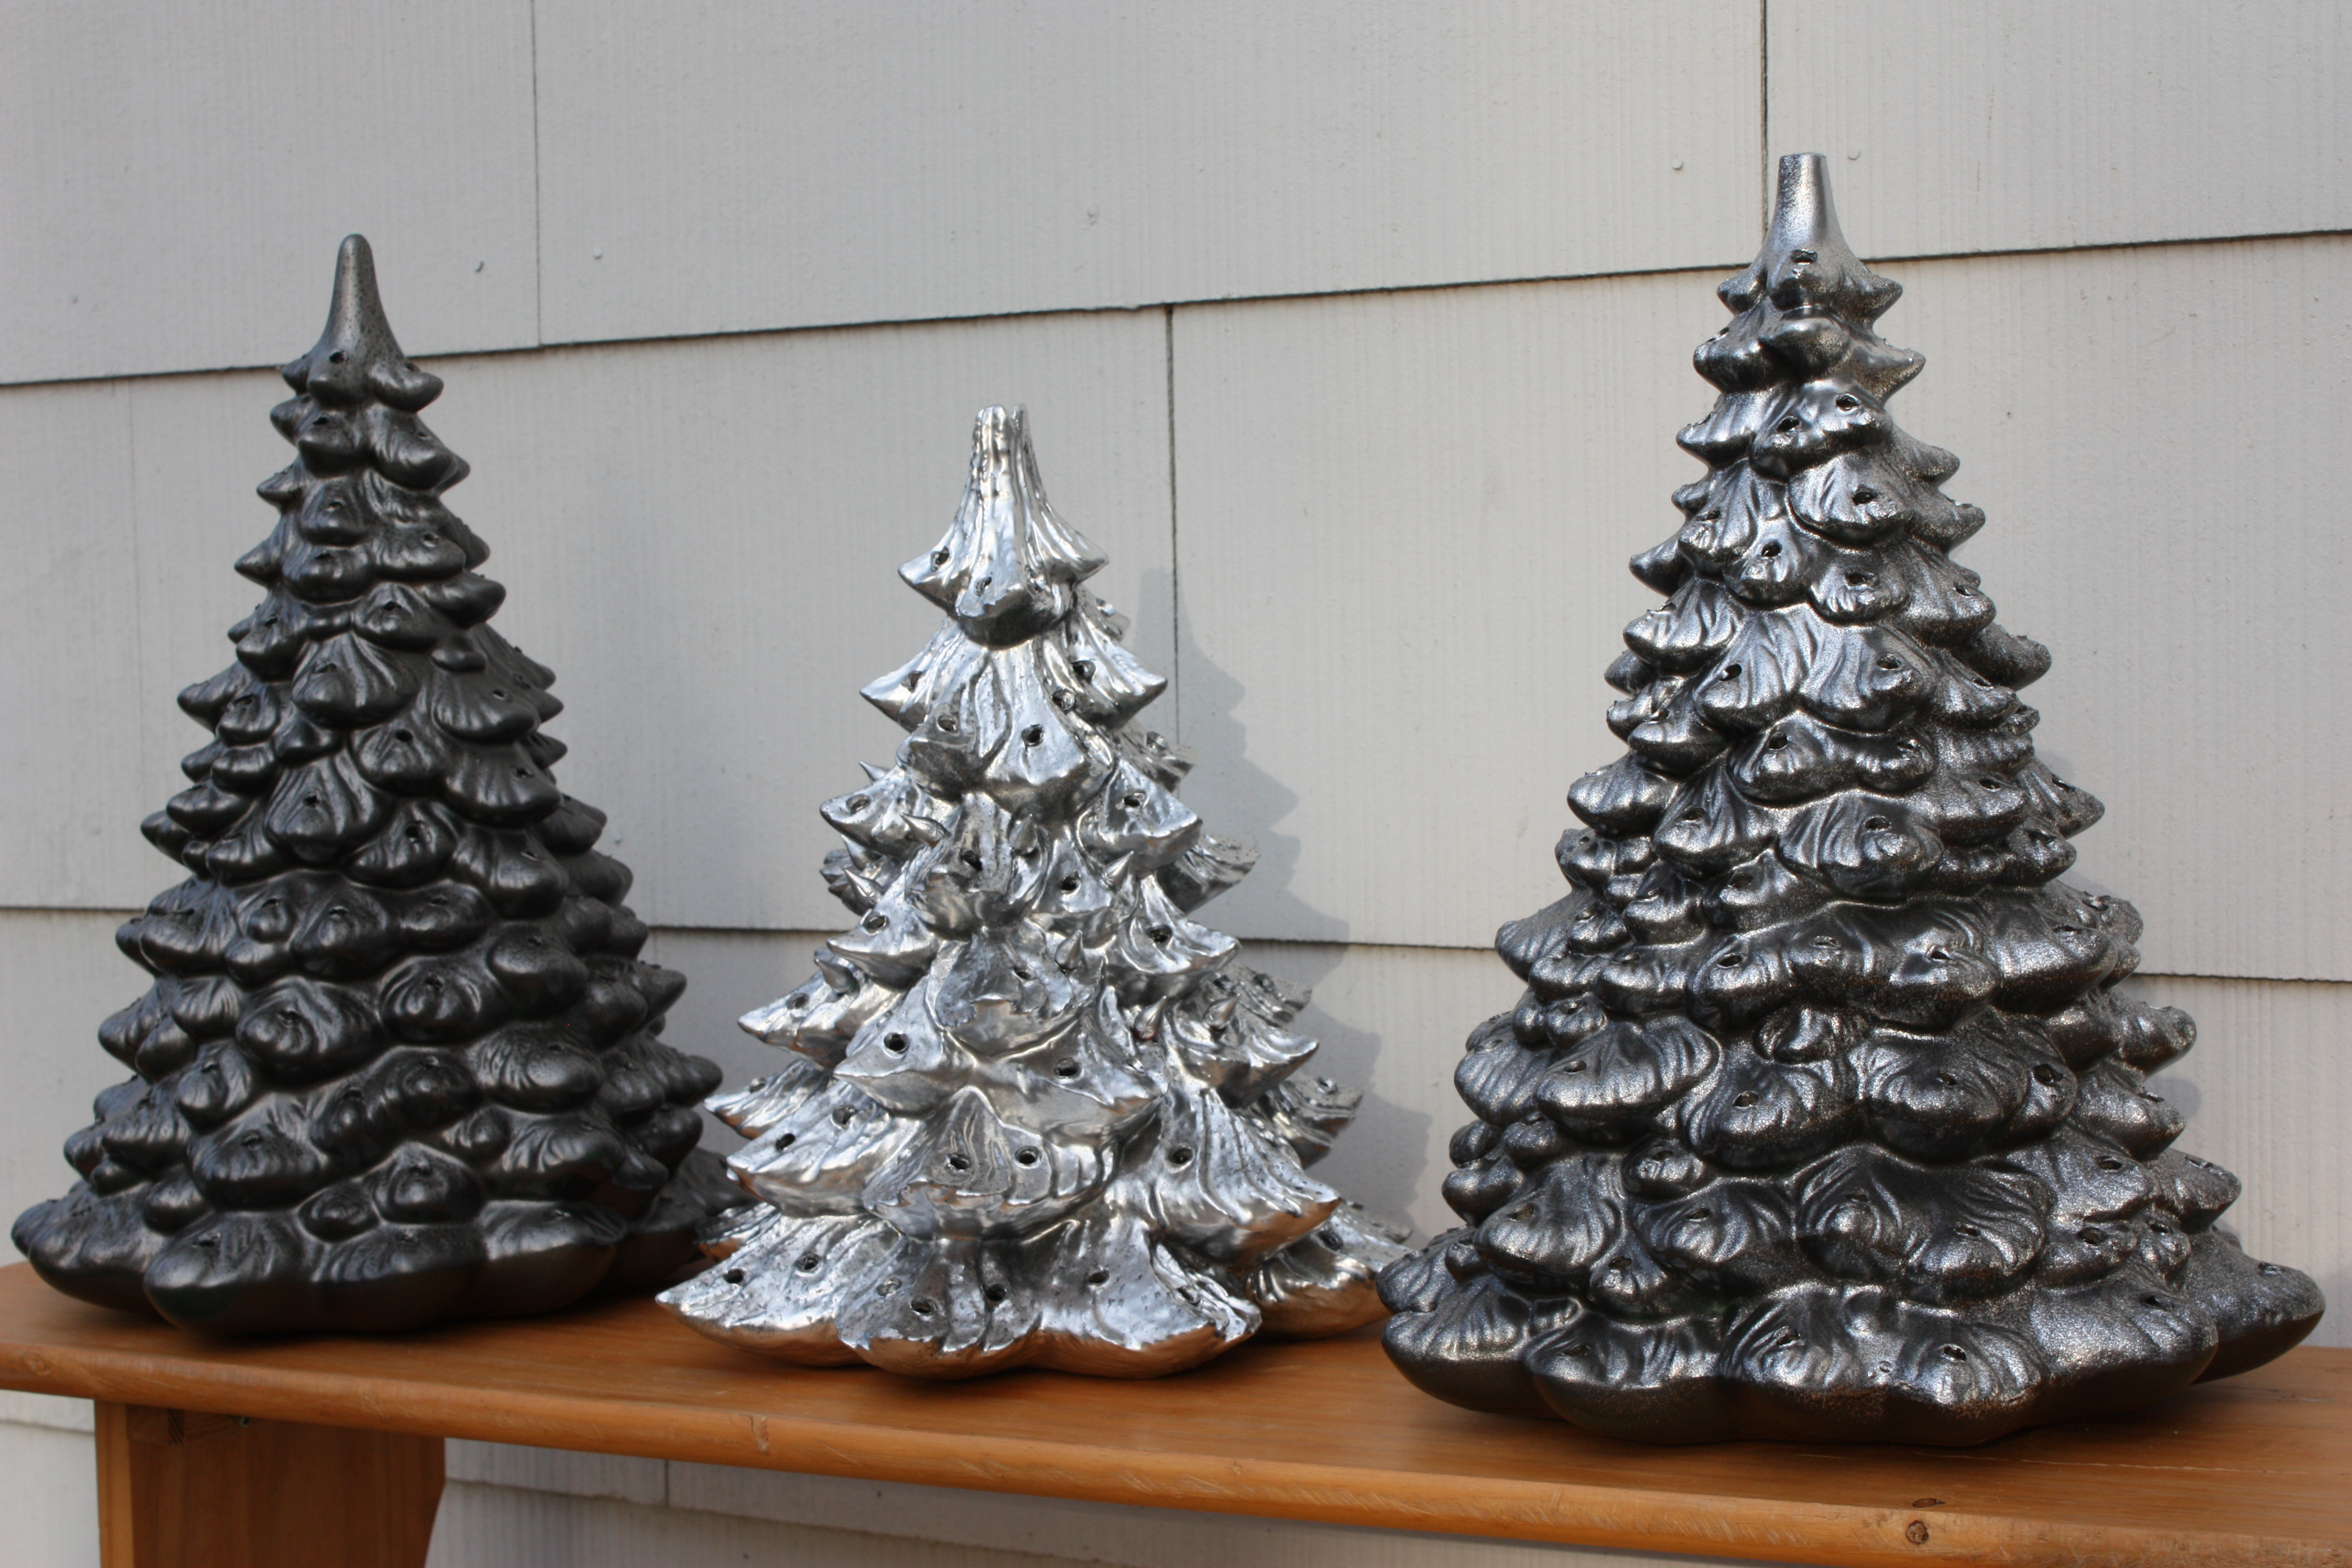 Heirloom Ceramic Christmas Tree Desecration – Let's Face the Music